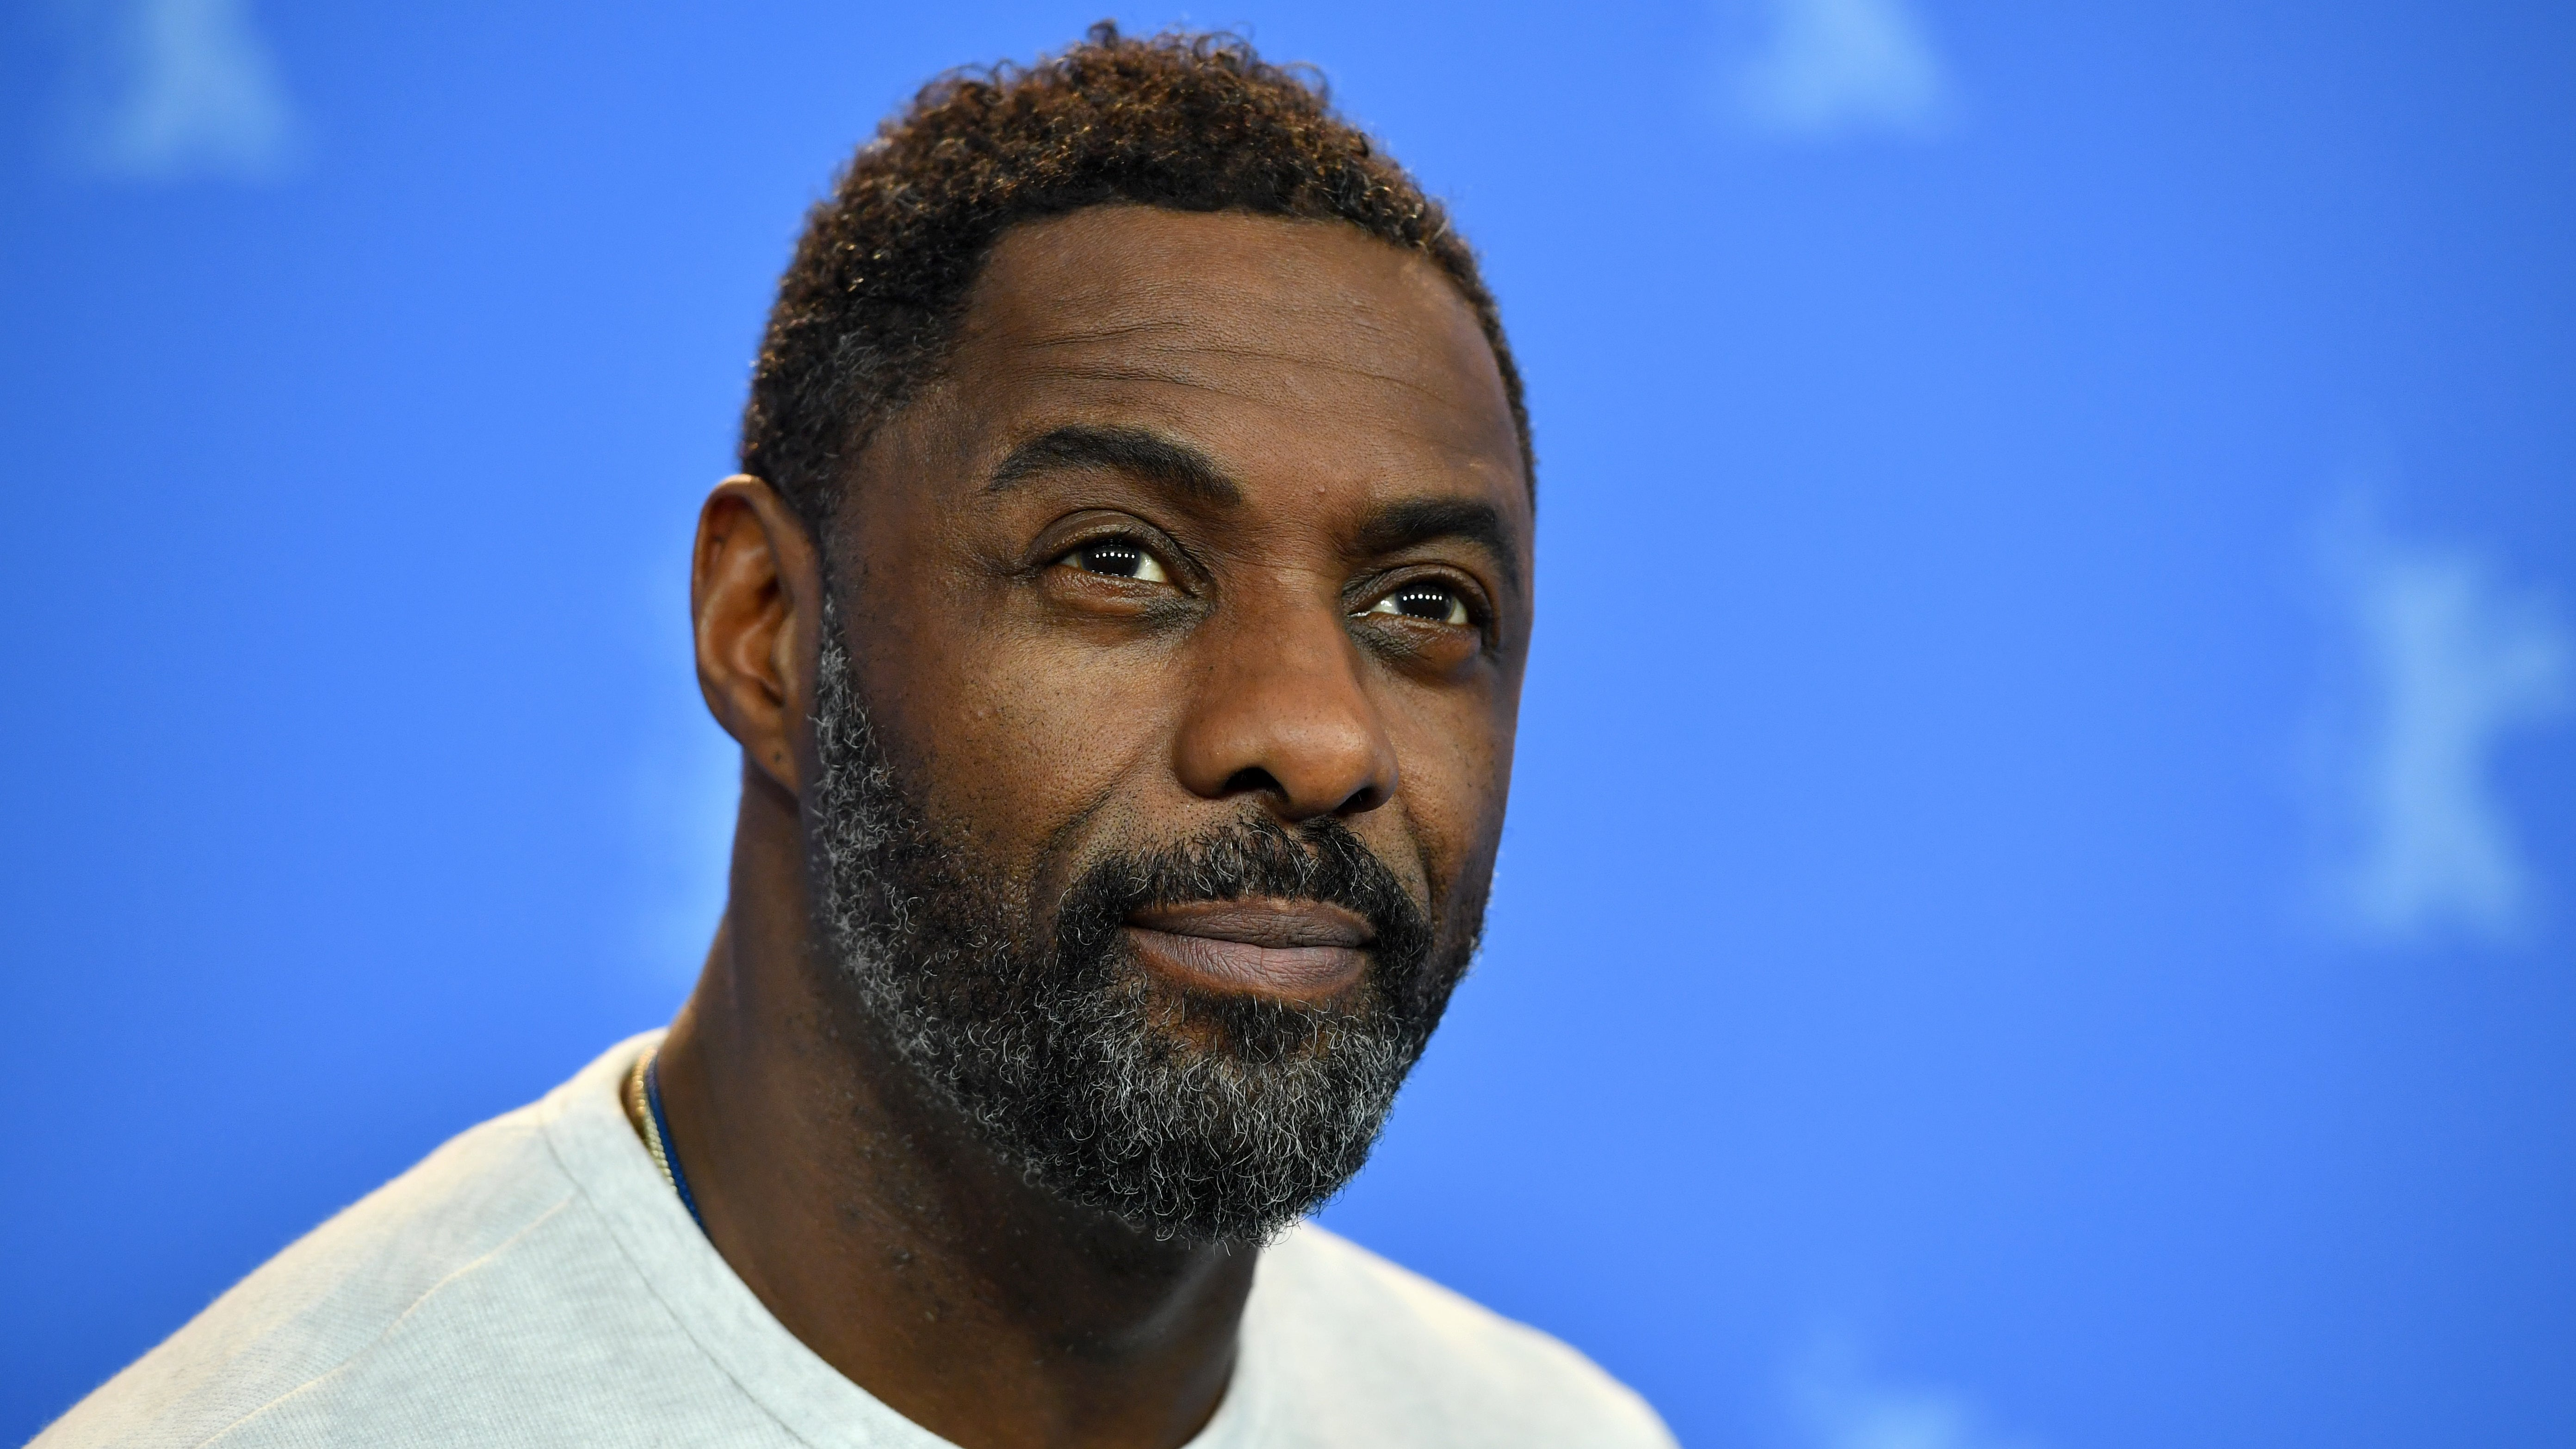 Idris Elba Is Replacing Will Smith As Deadshot In Suicide Squad 2